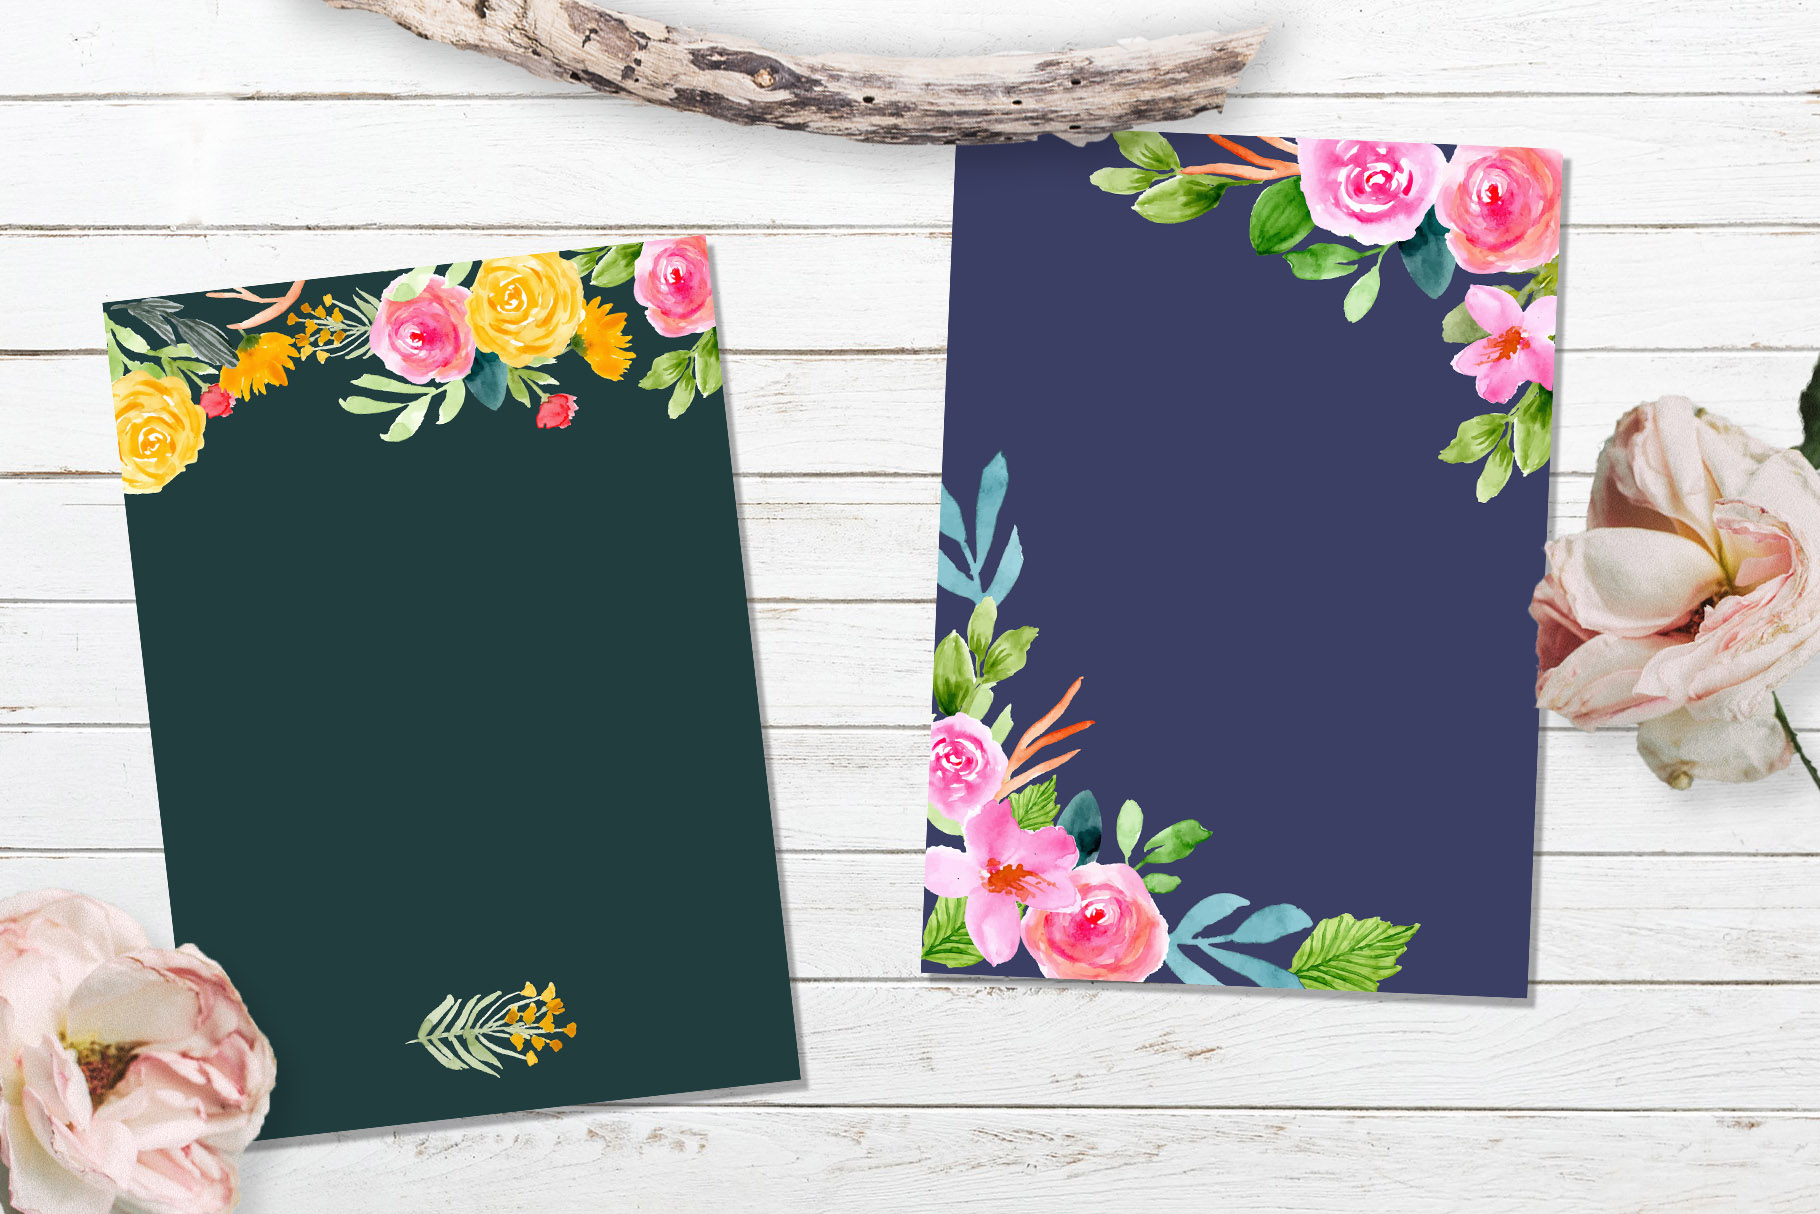 Floral Invitation Backgrounds Vol.3 example image 5